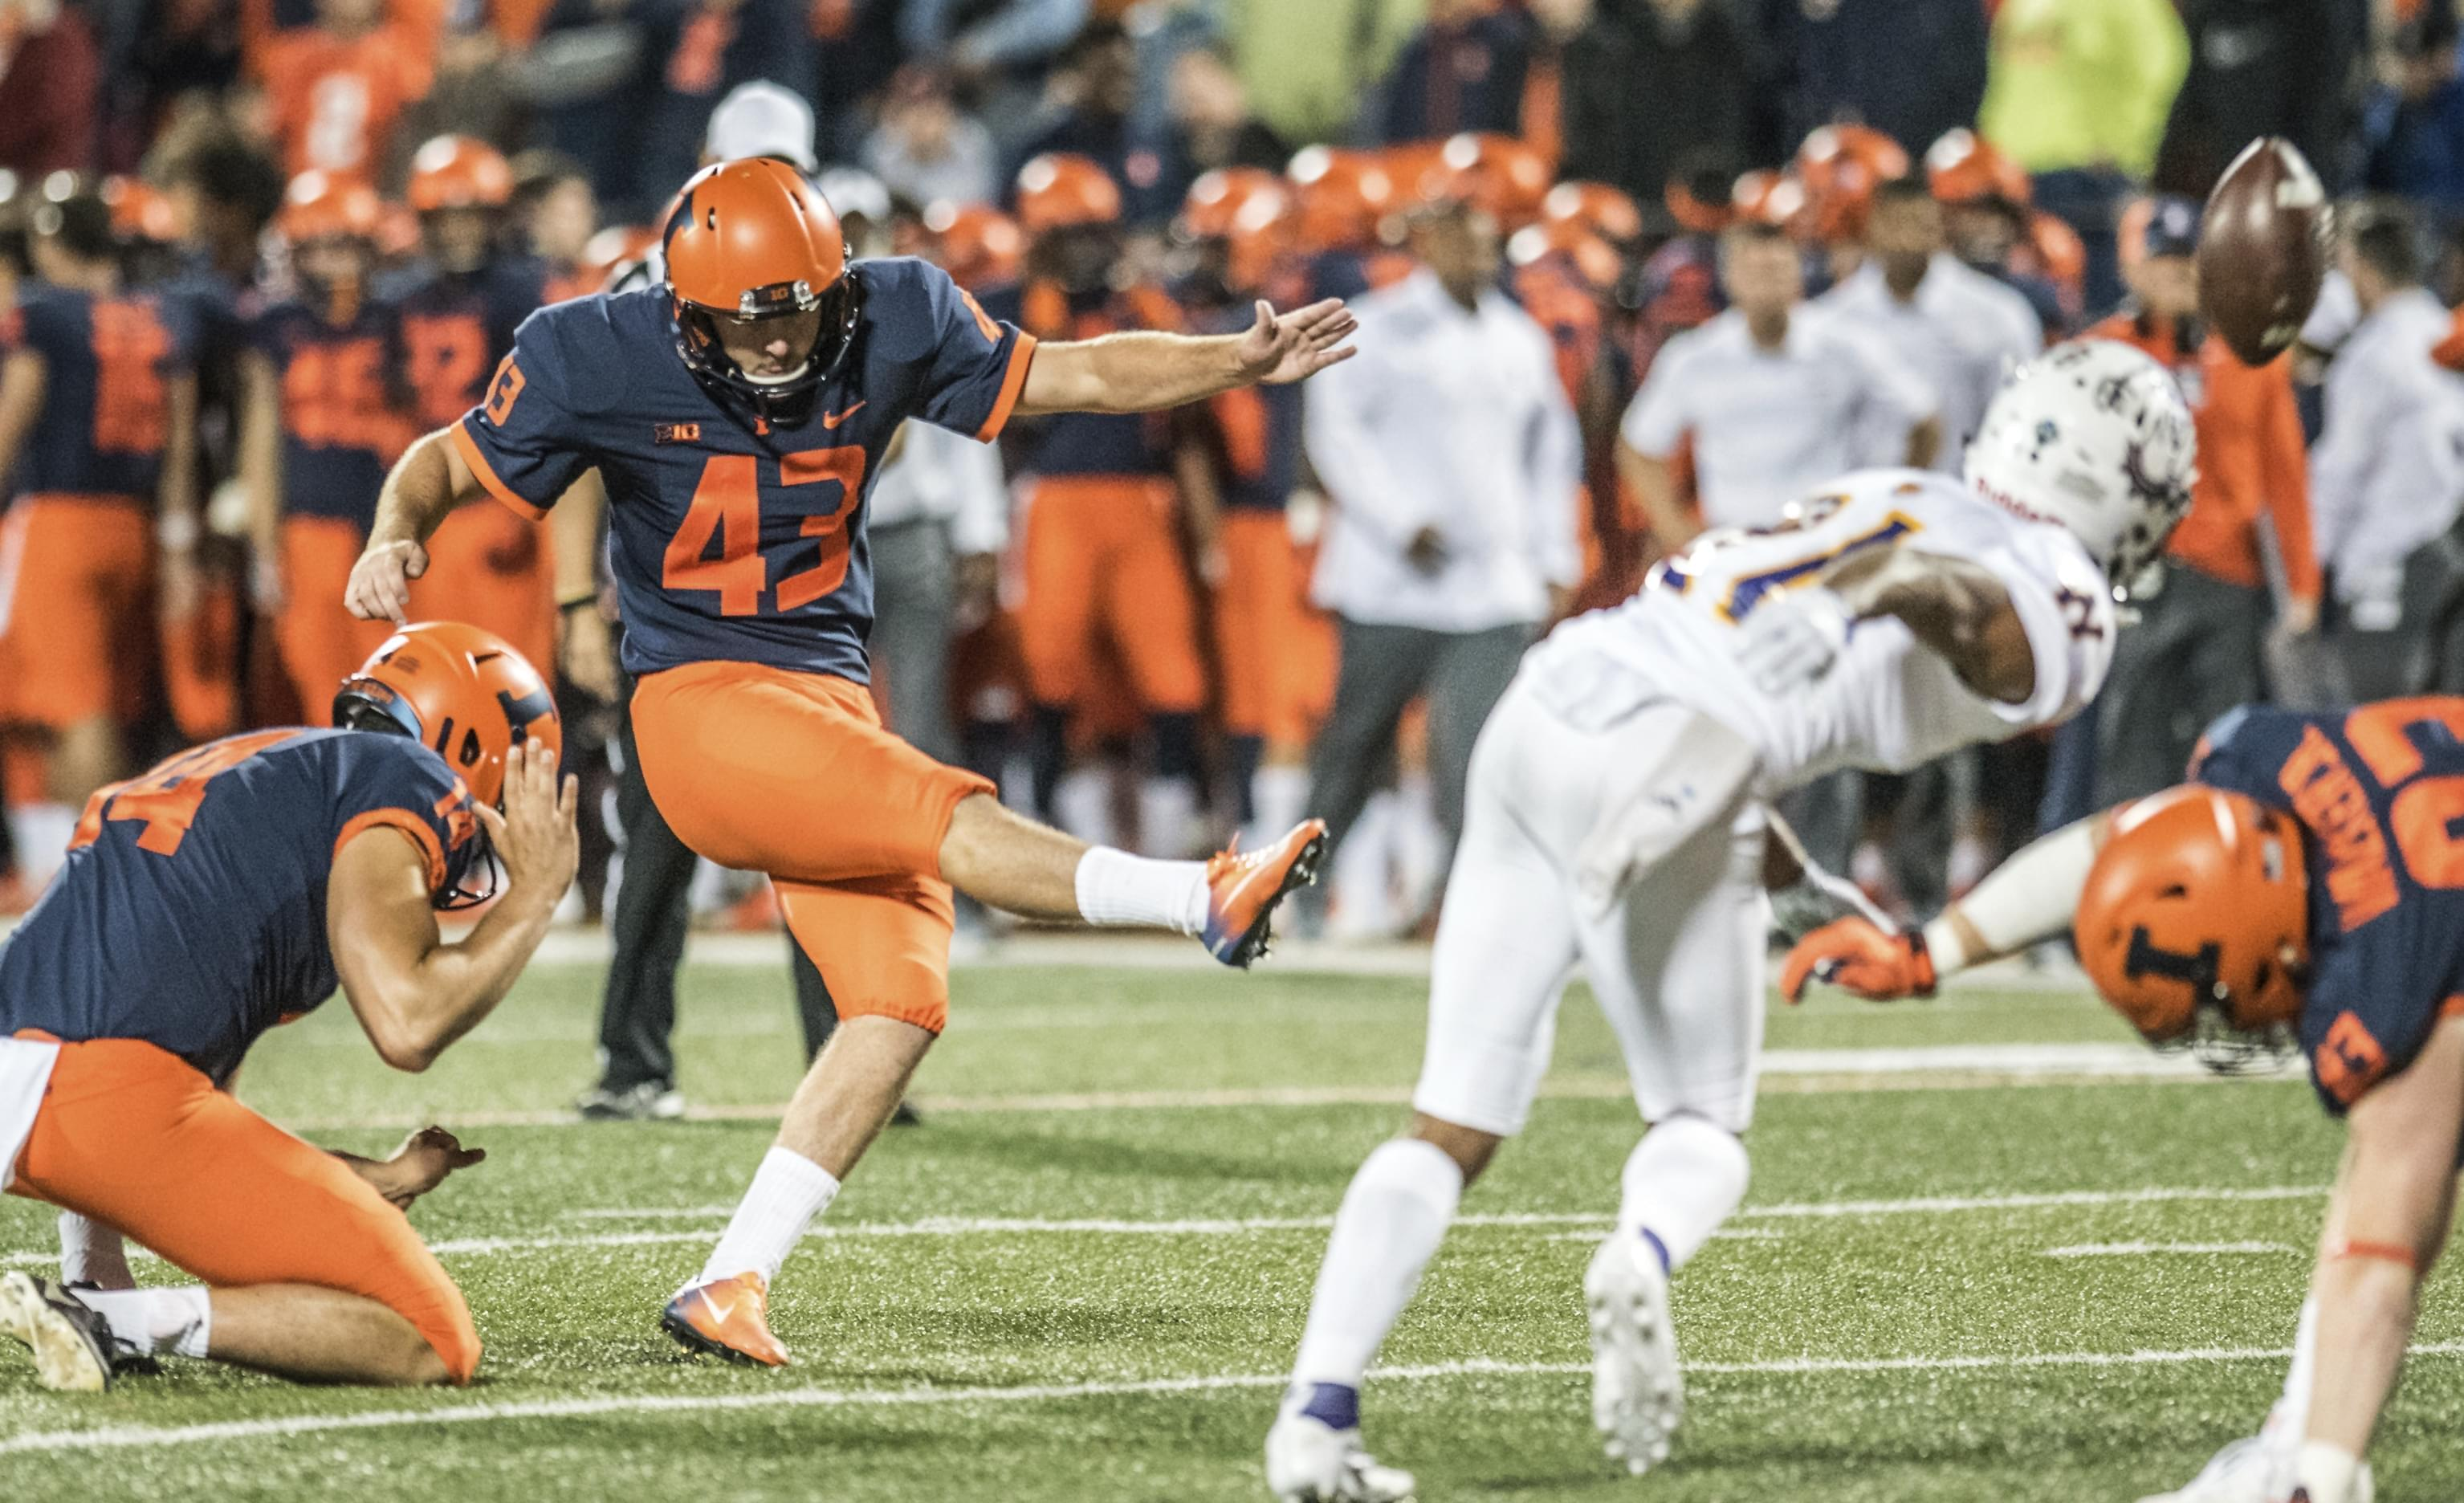 Illinois' Chase McLaughlin kicks an extra point during the first half of their football  game against Western Illinois.